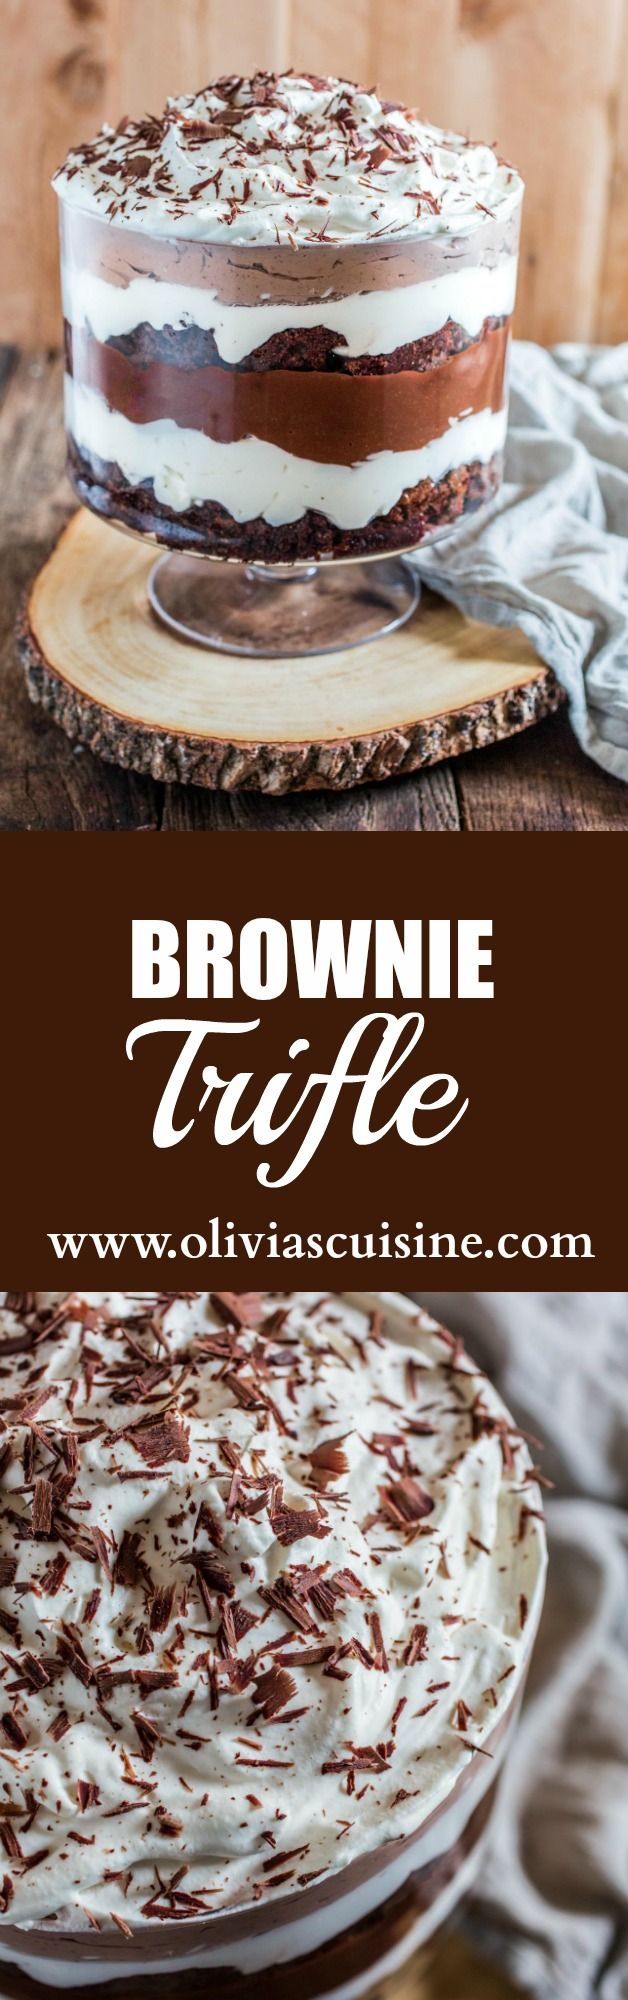 Brownie Trifle | http://www.oliviascuisine.com | An impressive, easy and rich dessert that feeds a crowd! All you have to do is layer brownies, whipped cream and chocolate pudding. What could be easier than that? :) /search/?q=%23ad&rs=hashtag /search/?q=%23mixinmoments&rs=hashtag